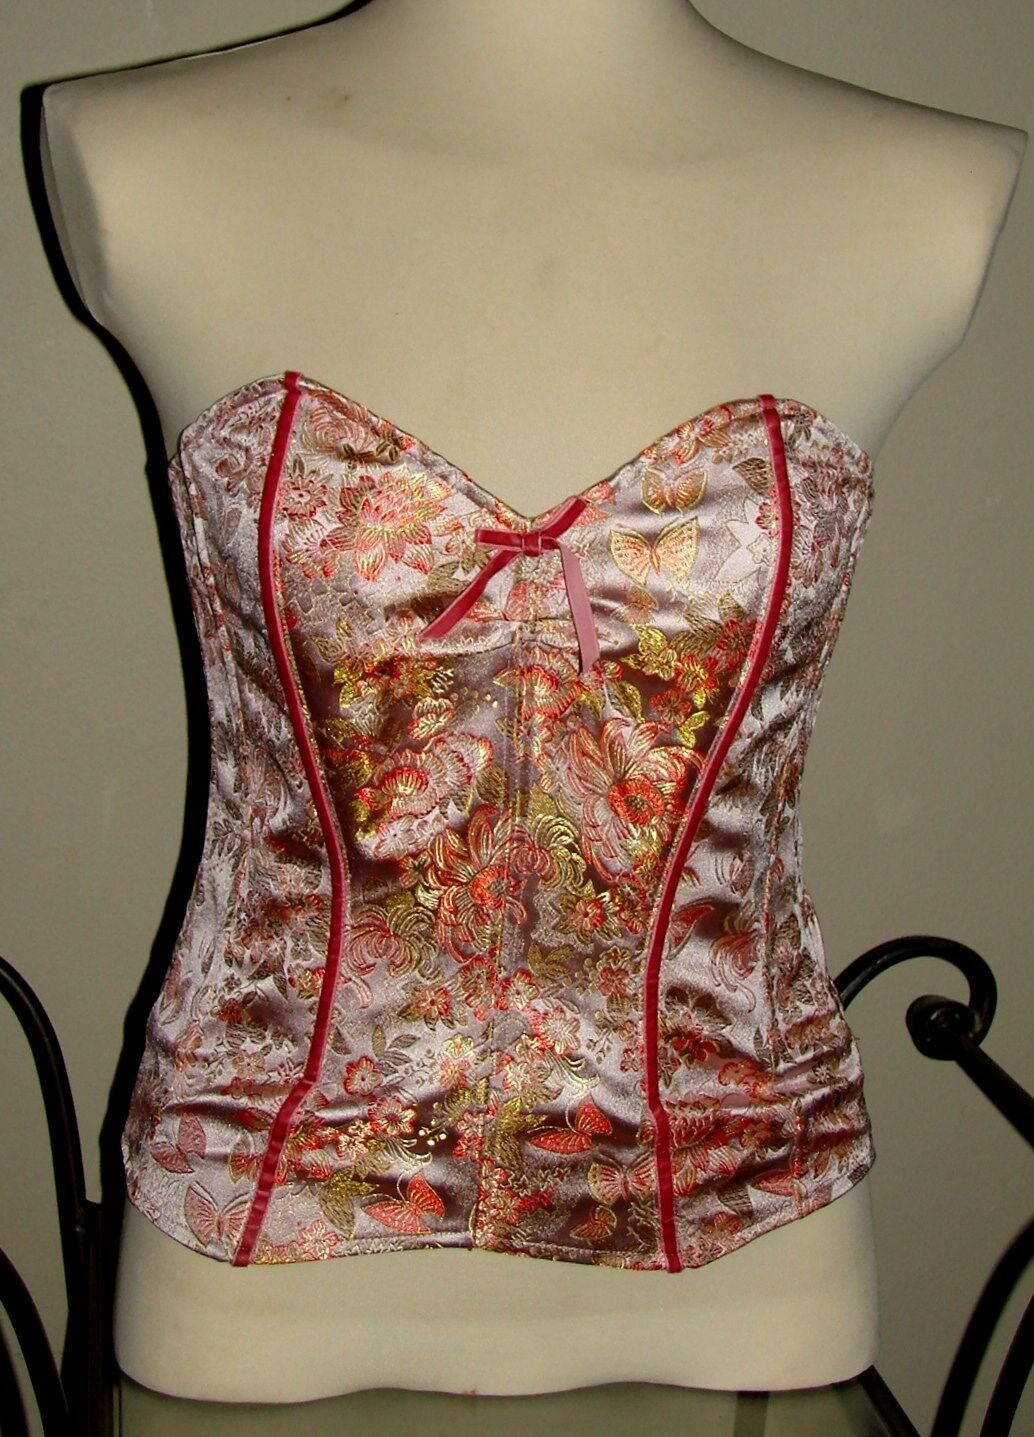 Betsey Johnson Top VINTAGE Floral CORSET Bustier BUTTERFLY Pink BROCADE Silk 8 M